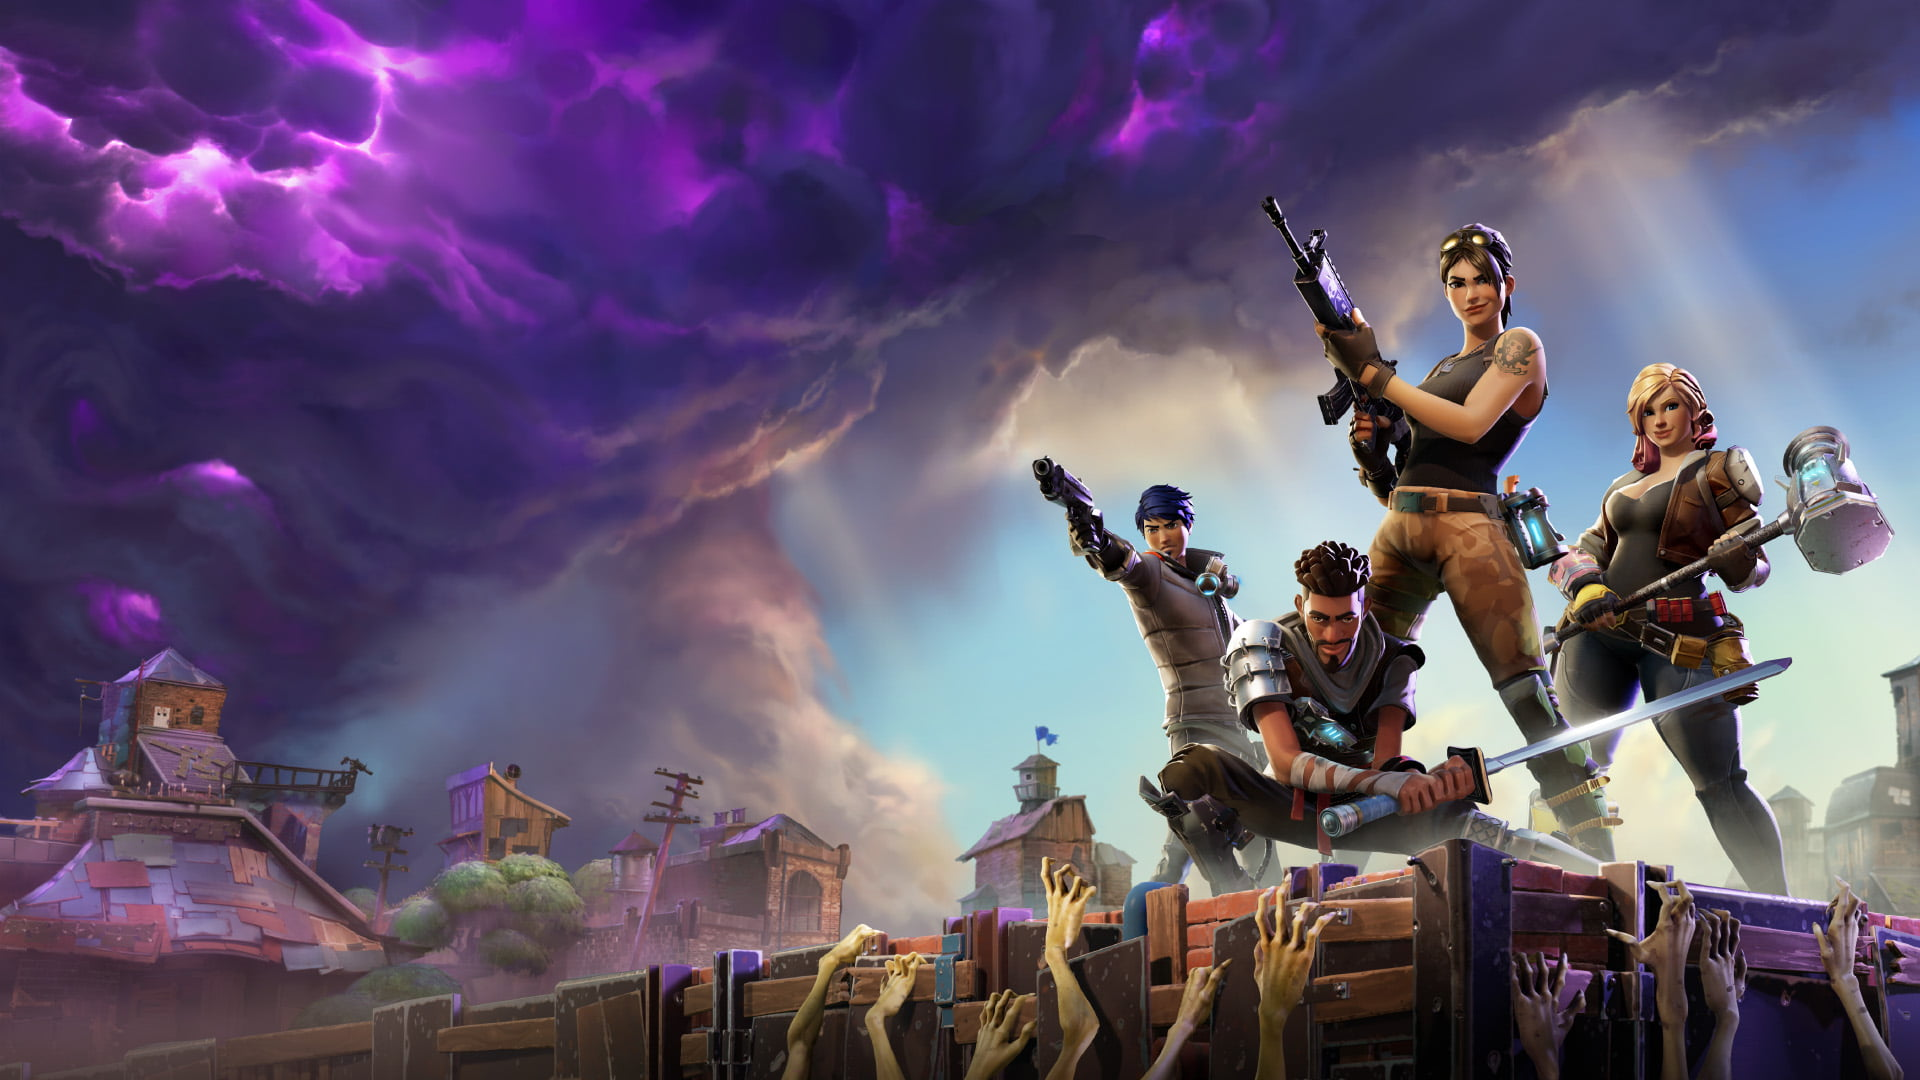 Photo of Fortnite Season 4 Announcement Trailer & Patch Notes